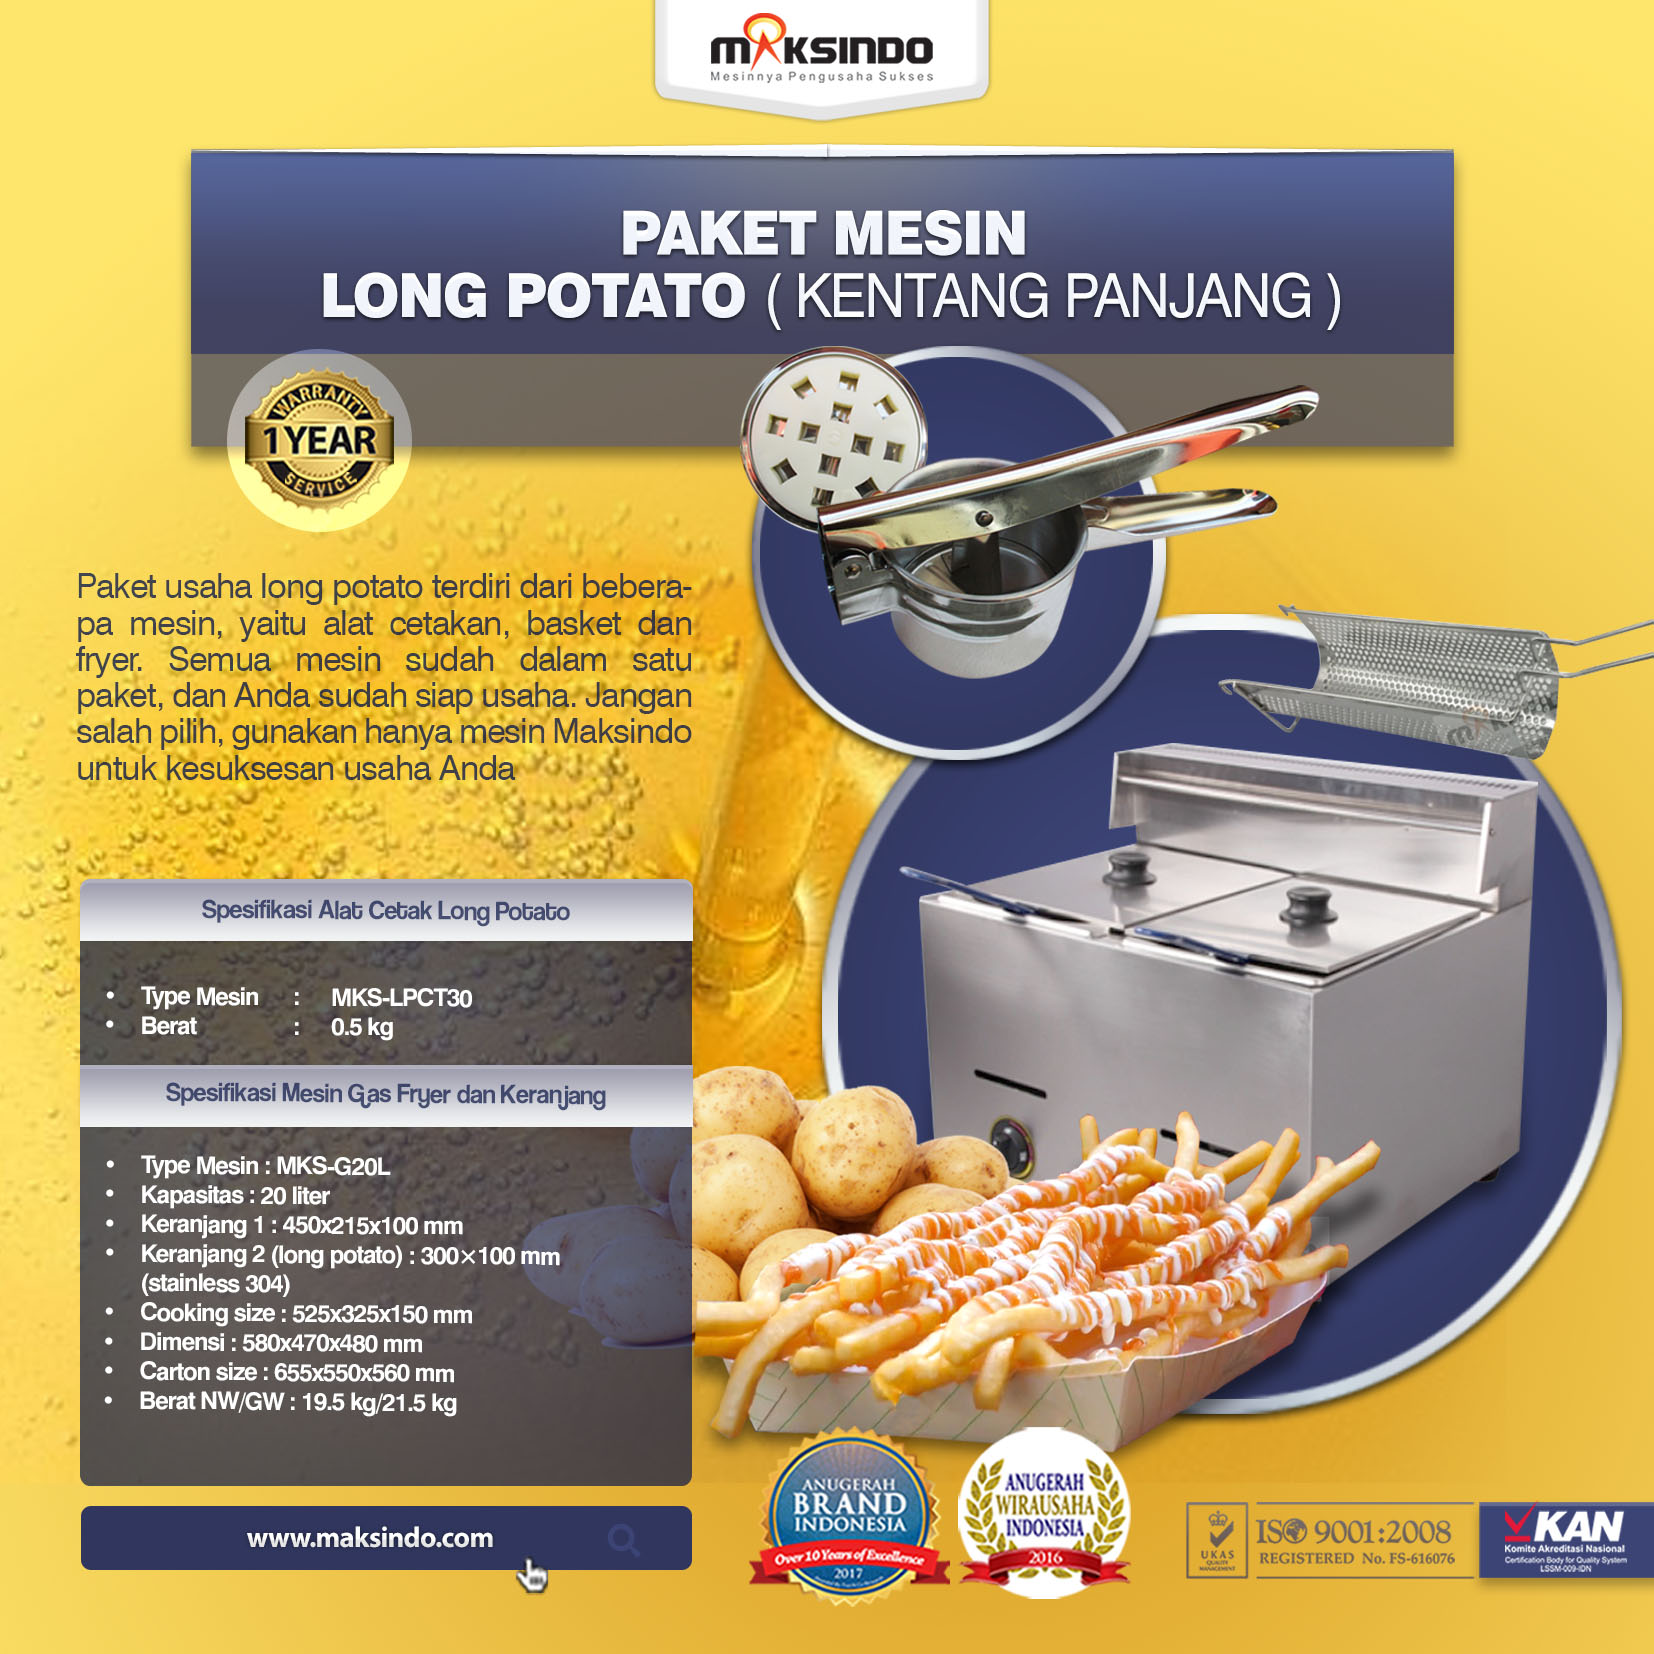 Jual Paket Mesin Long Potato Kentang Panjang di Palembang